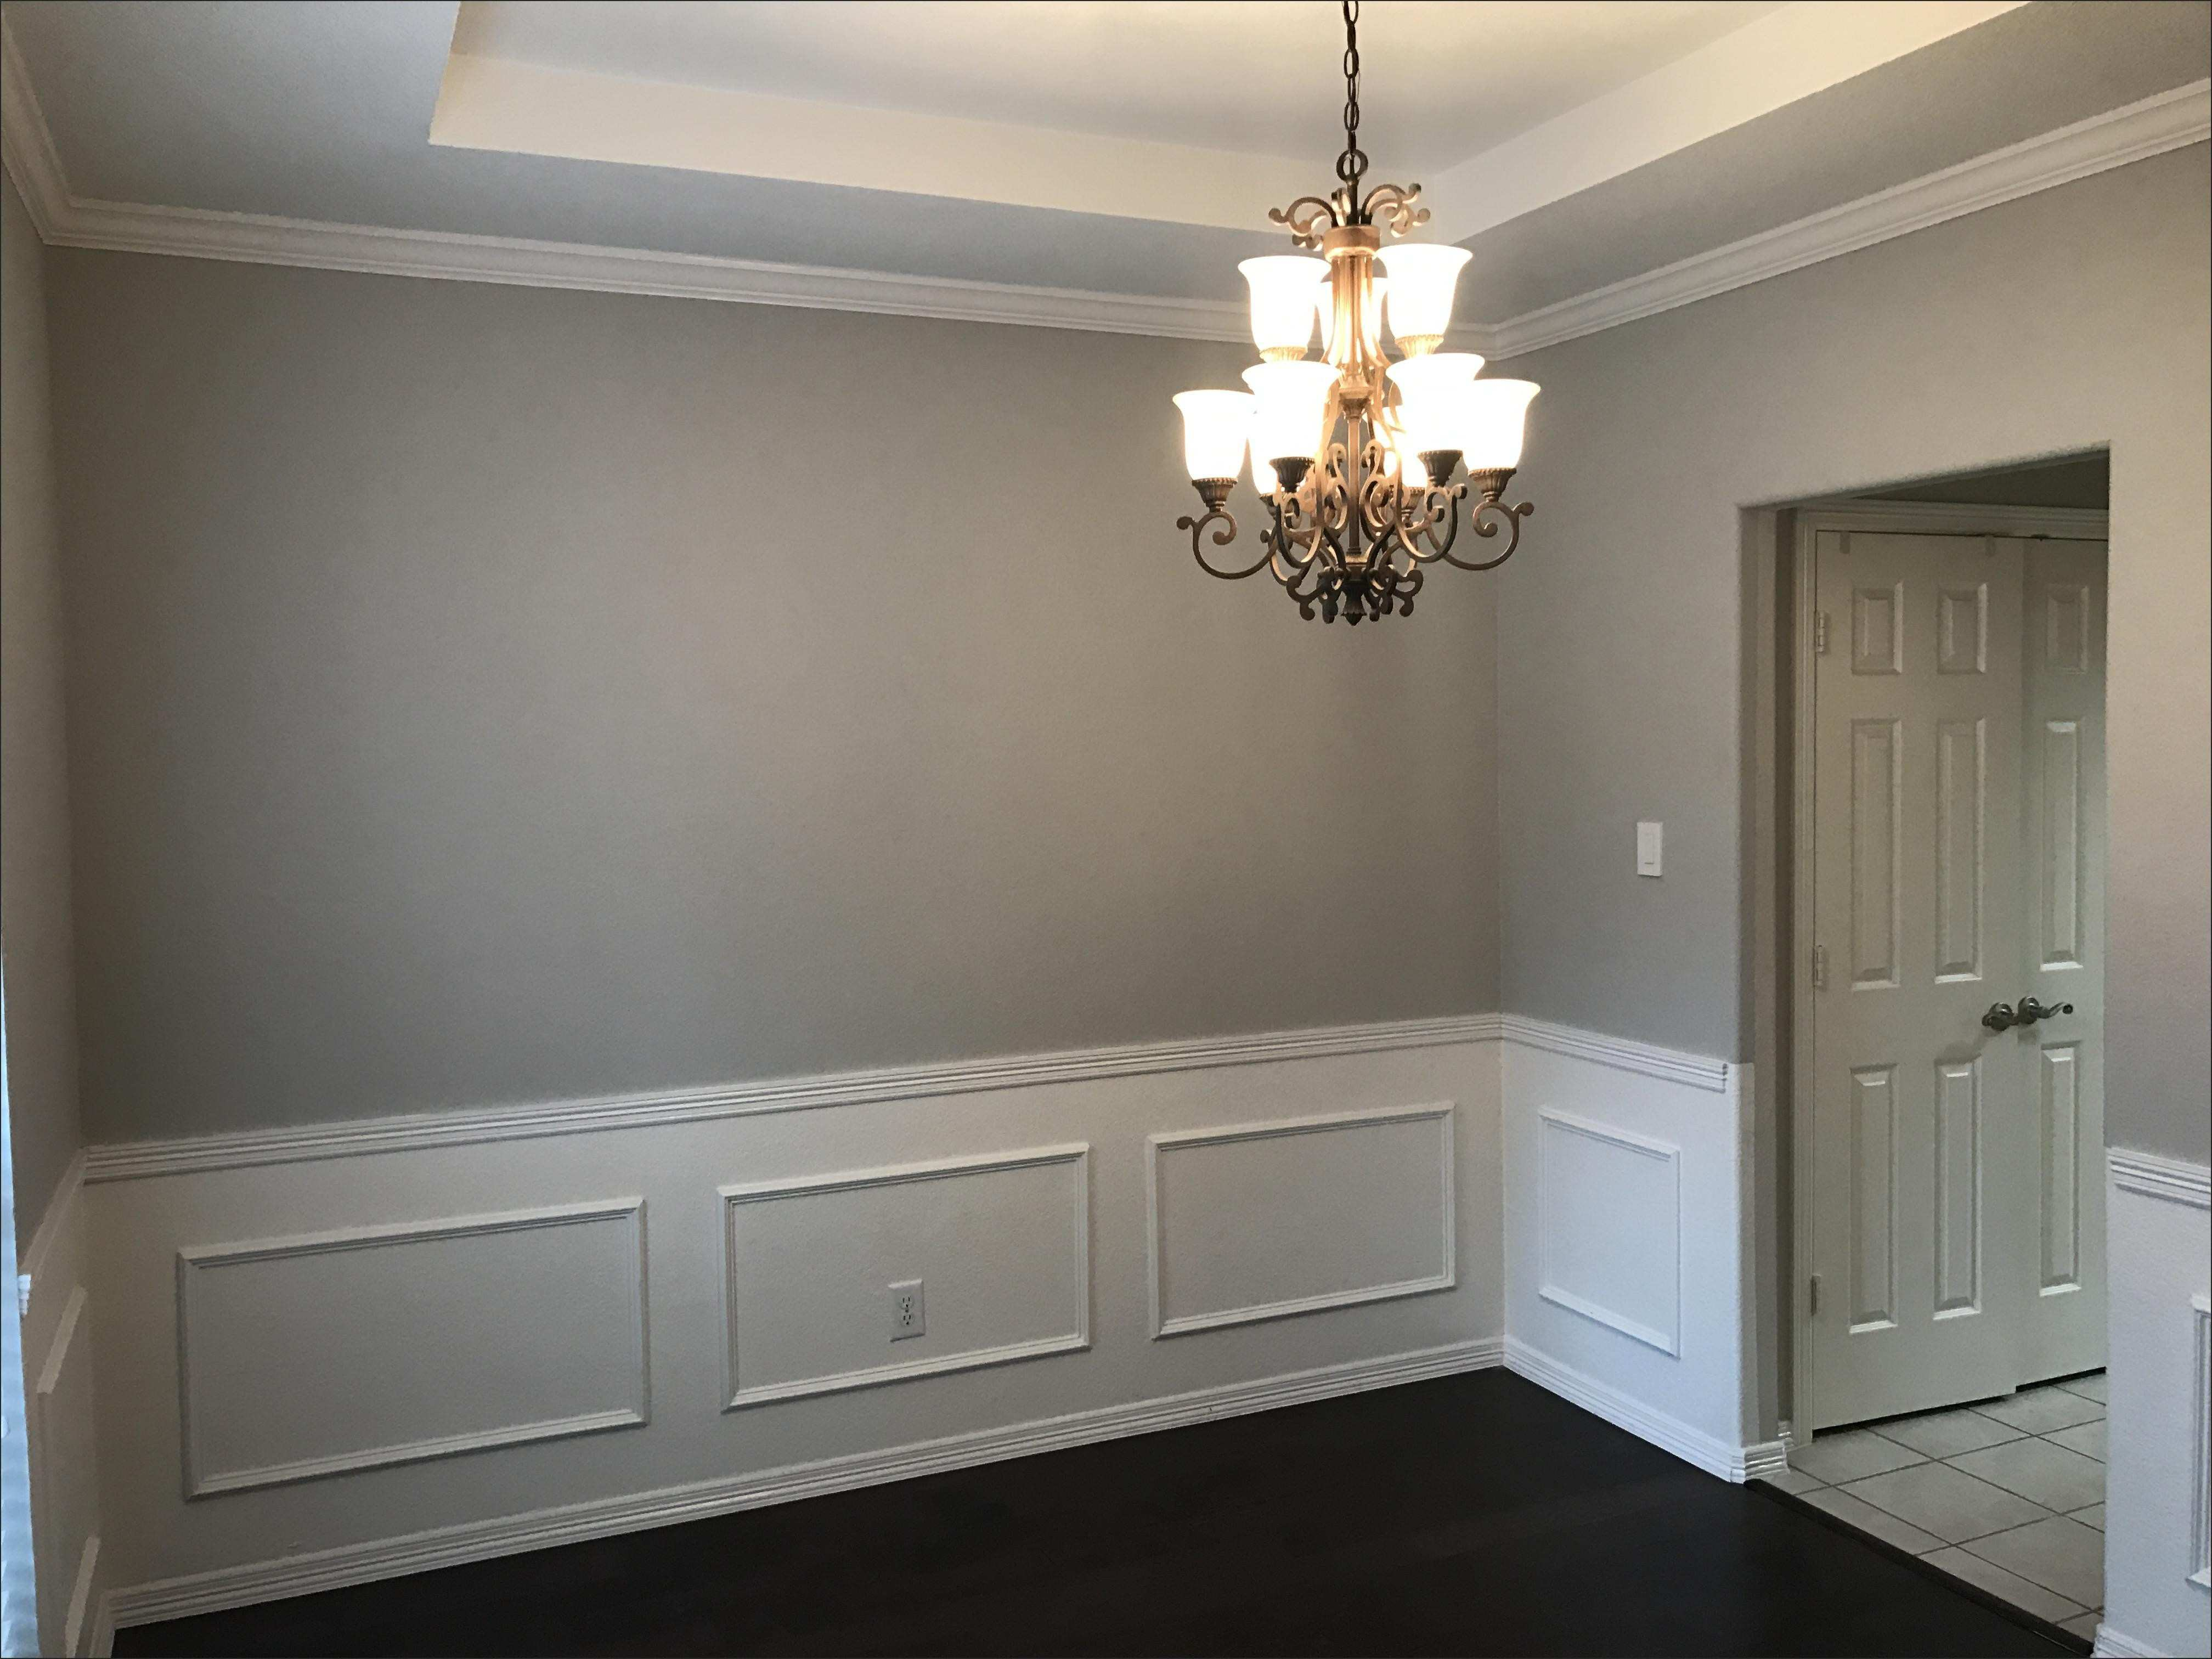 Painting Elegant How to Paint Trim White Design Creative How To